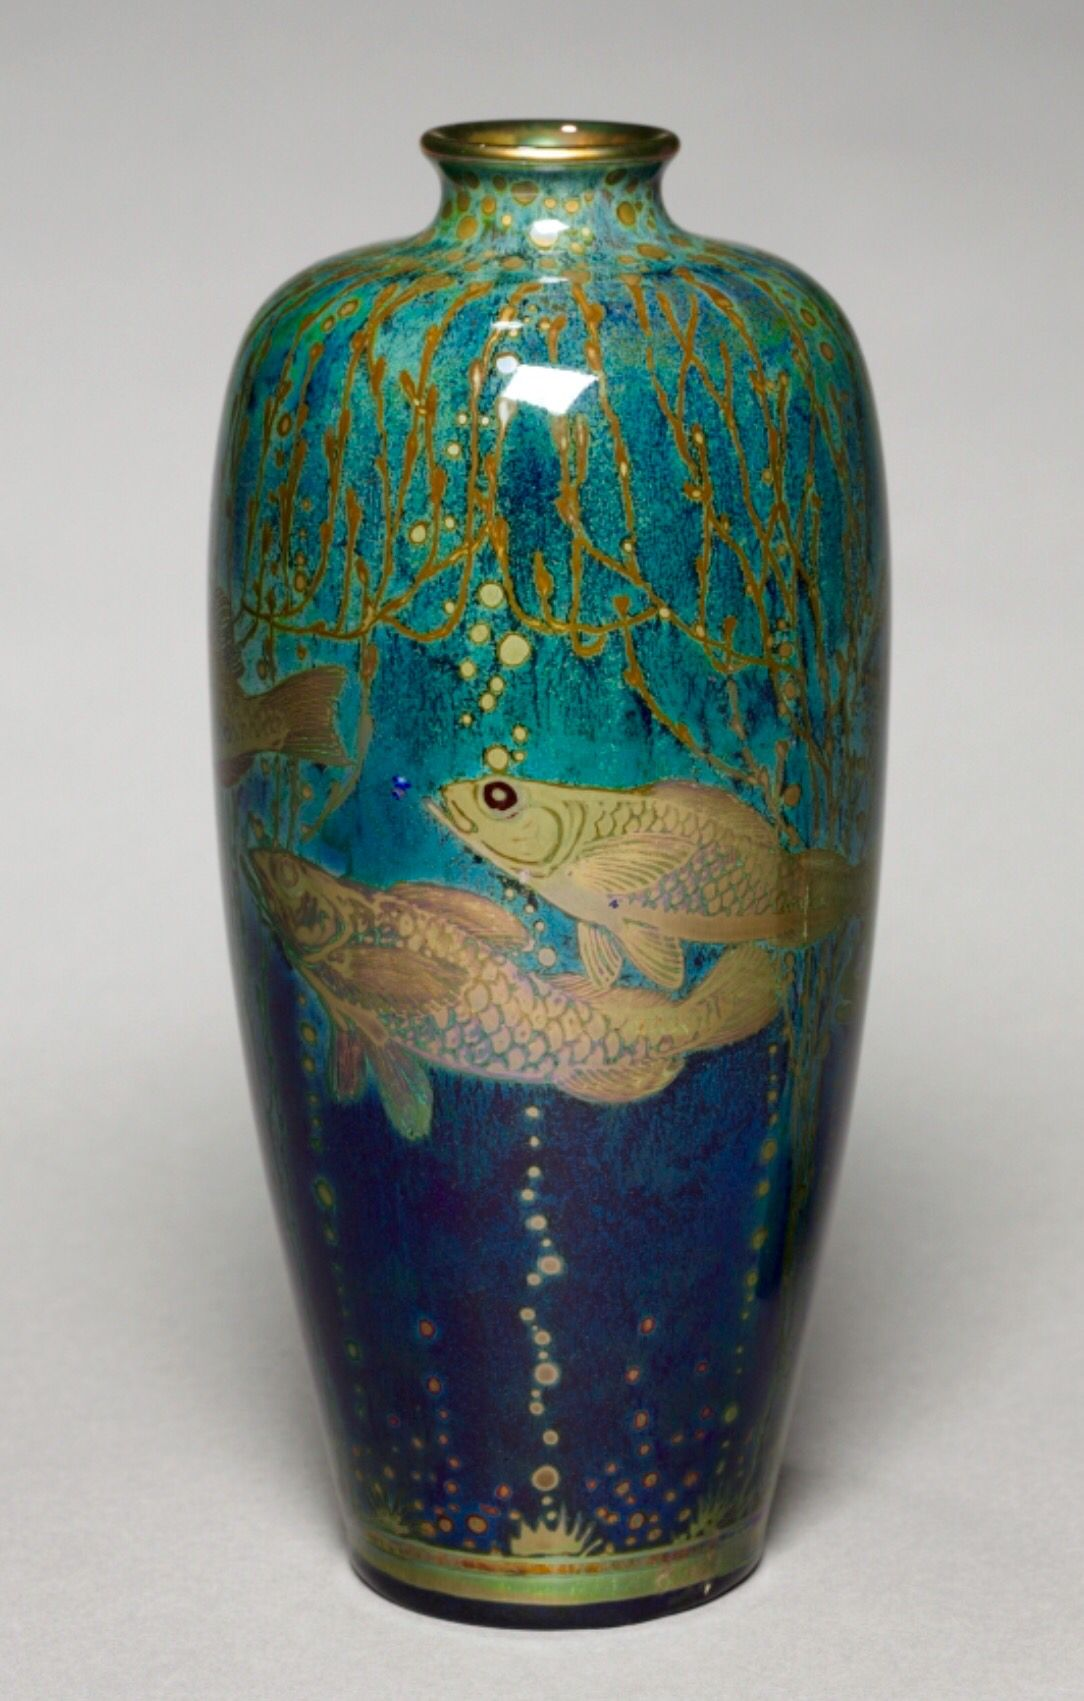 Royal Lancastrian Vase, 1914 Pilkington's Royal Lancastrian Pottery Co. (British), Richard Joyce (British, 1873-1931)